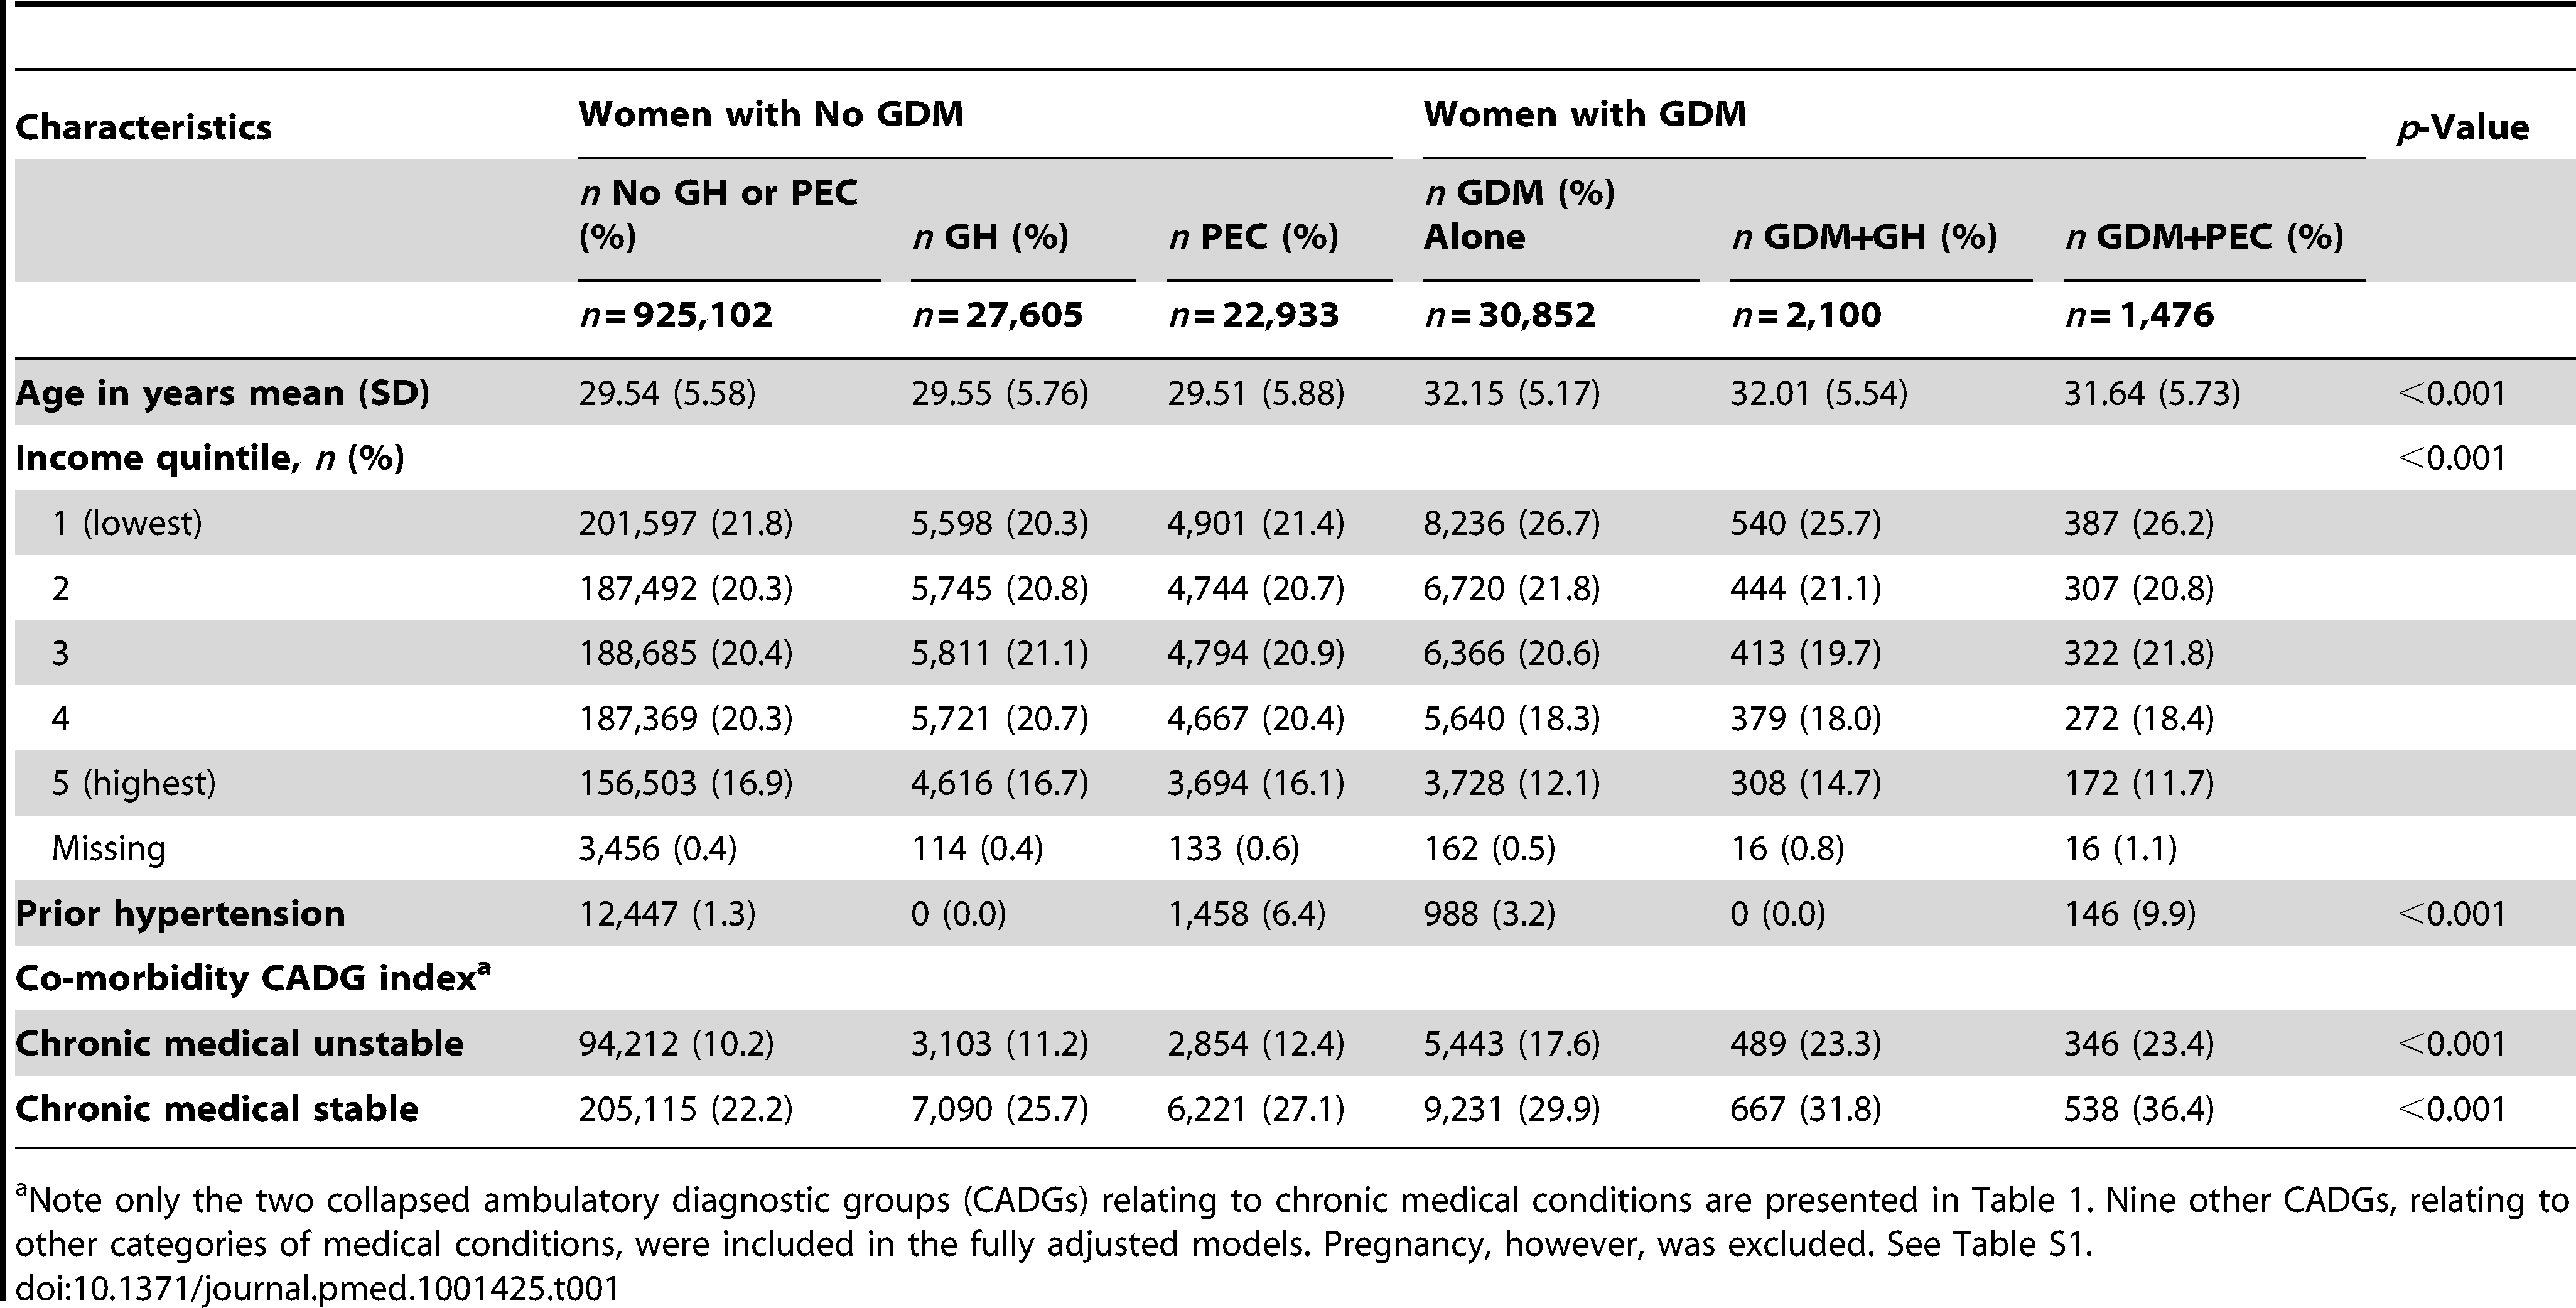 Demographic and clinical characteristics of women stratified by gestational diabetes diagnosis.